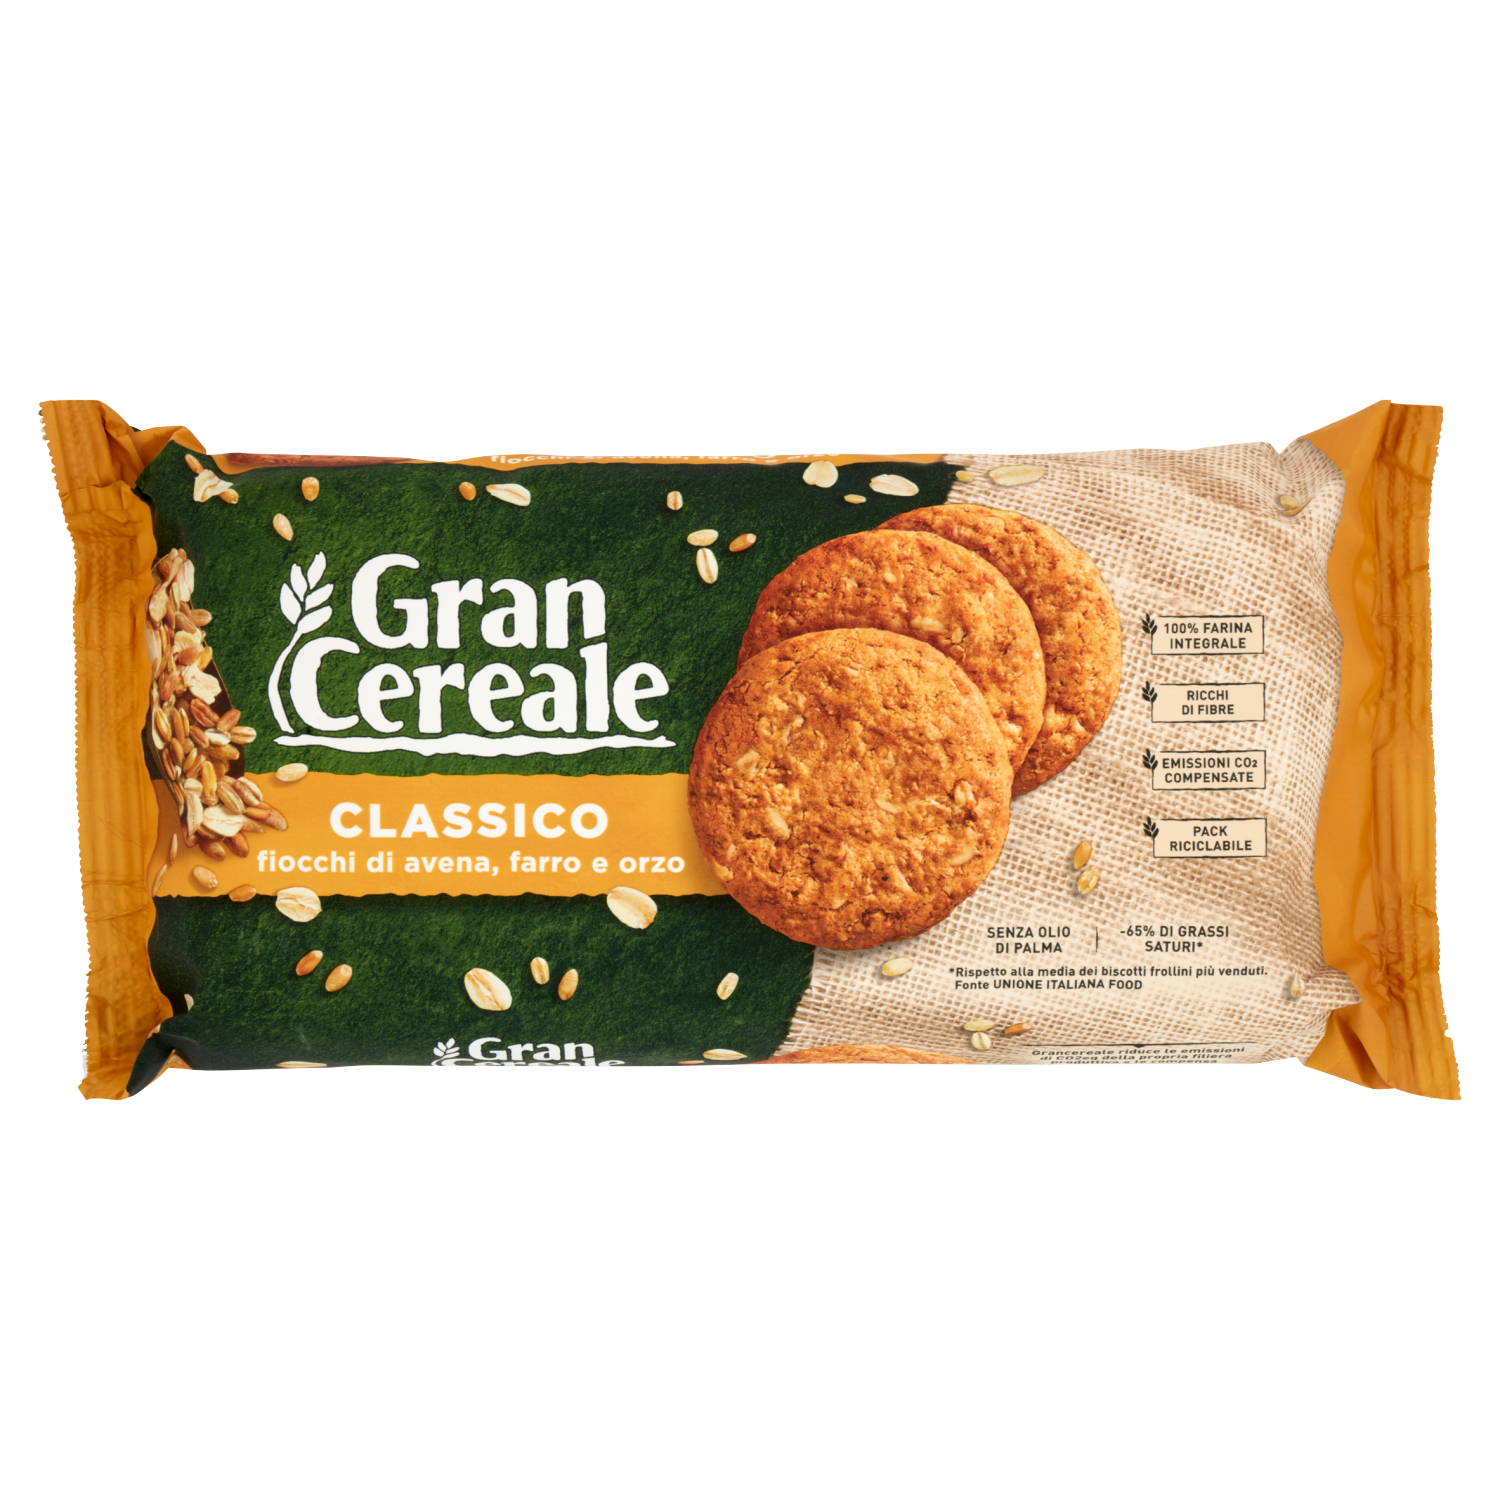 Gran Cereale Classico, DOUBLE PACK 500g